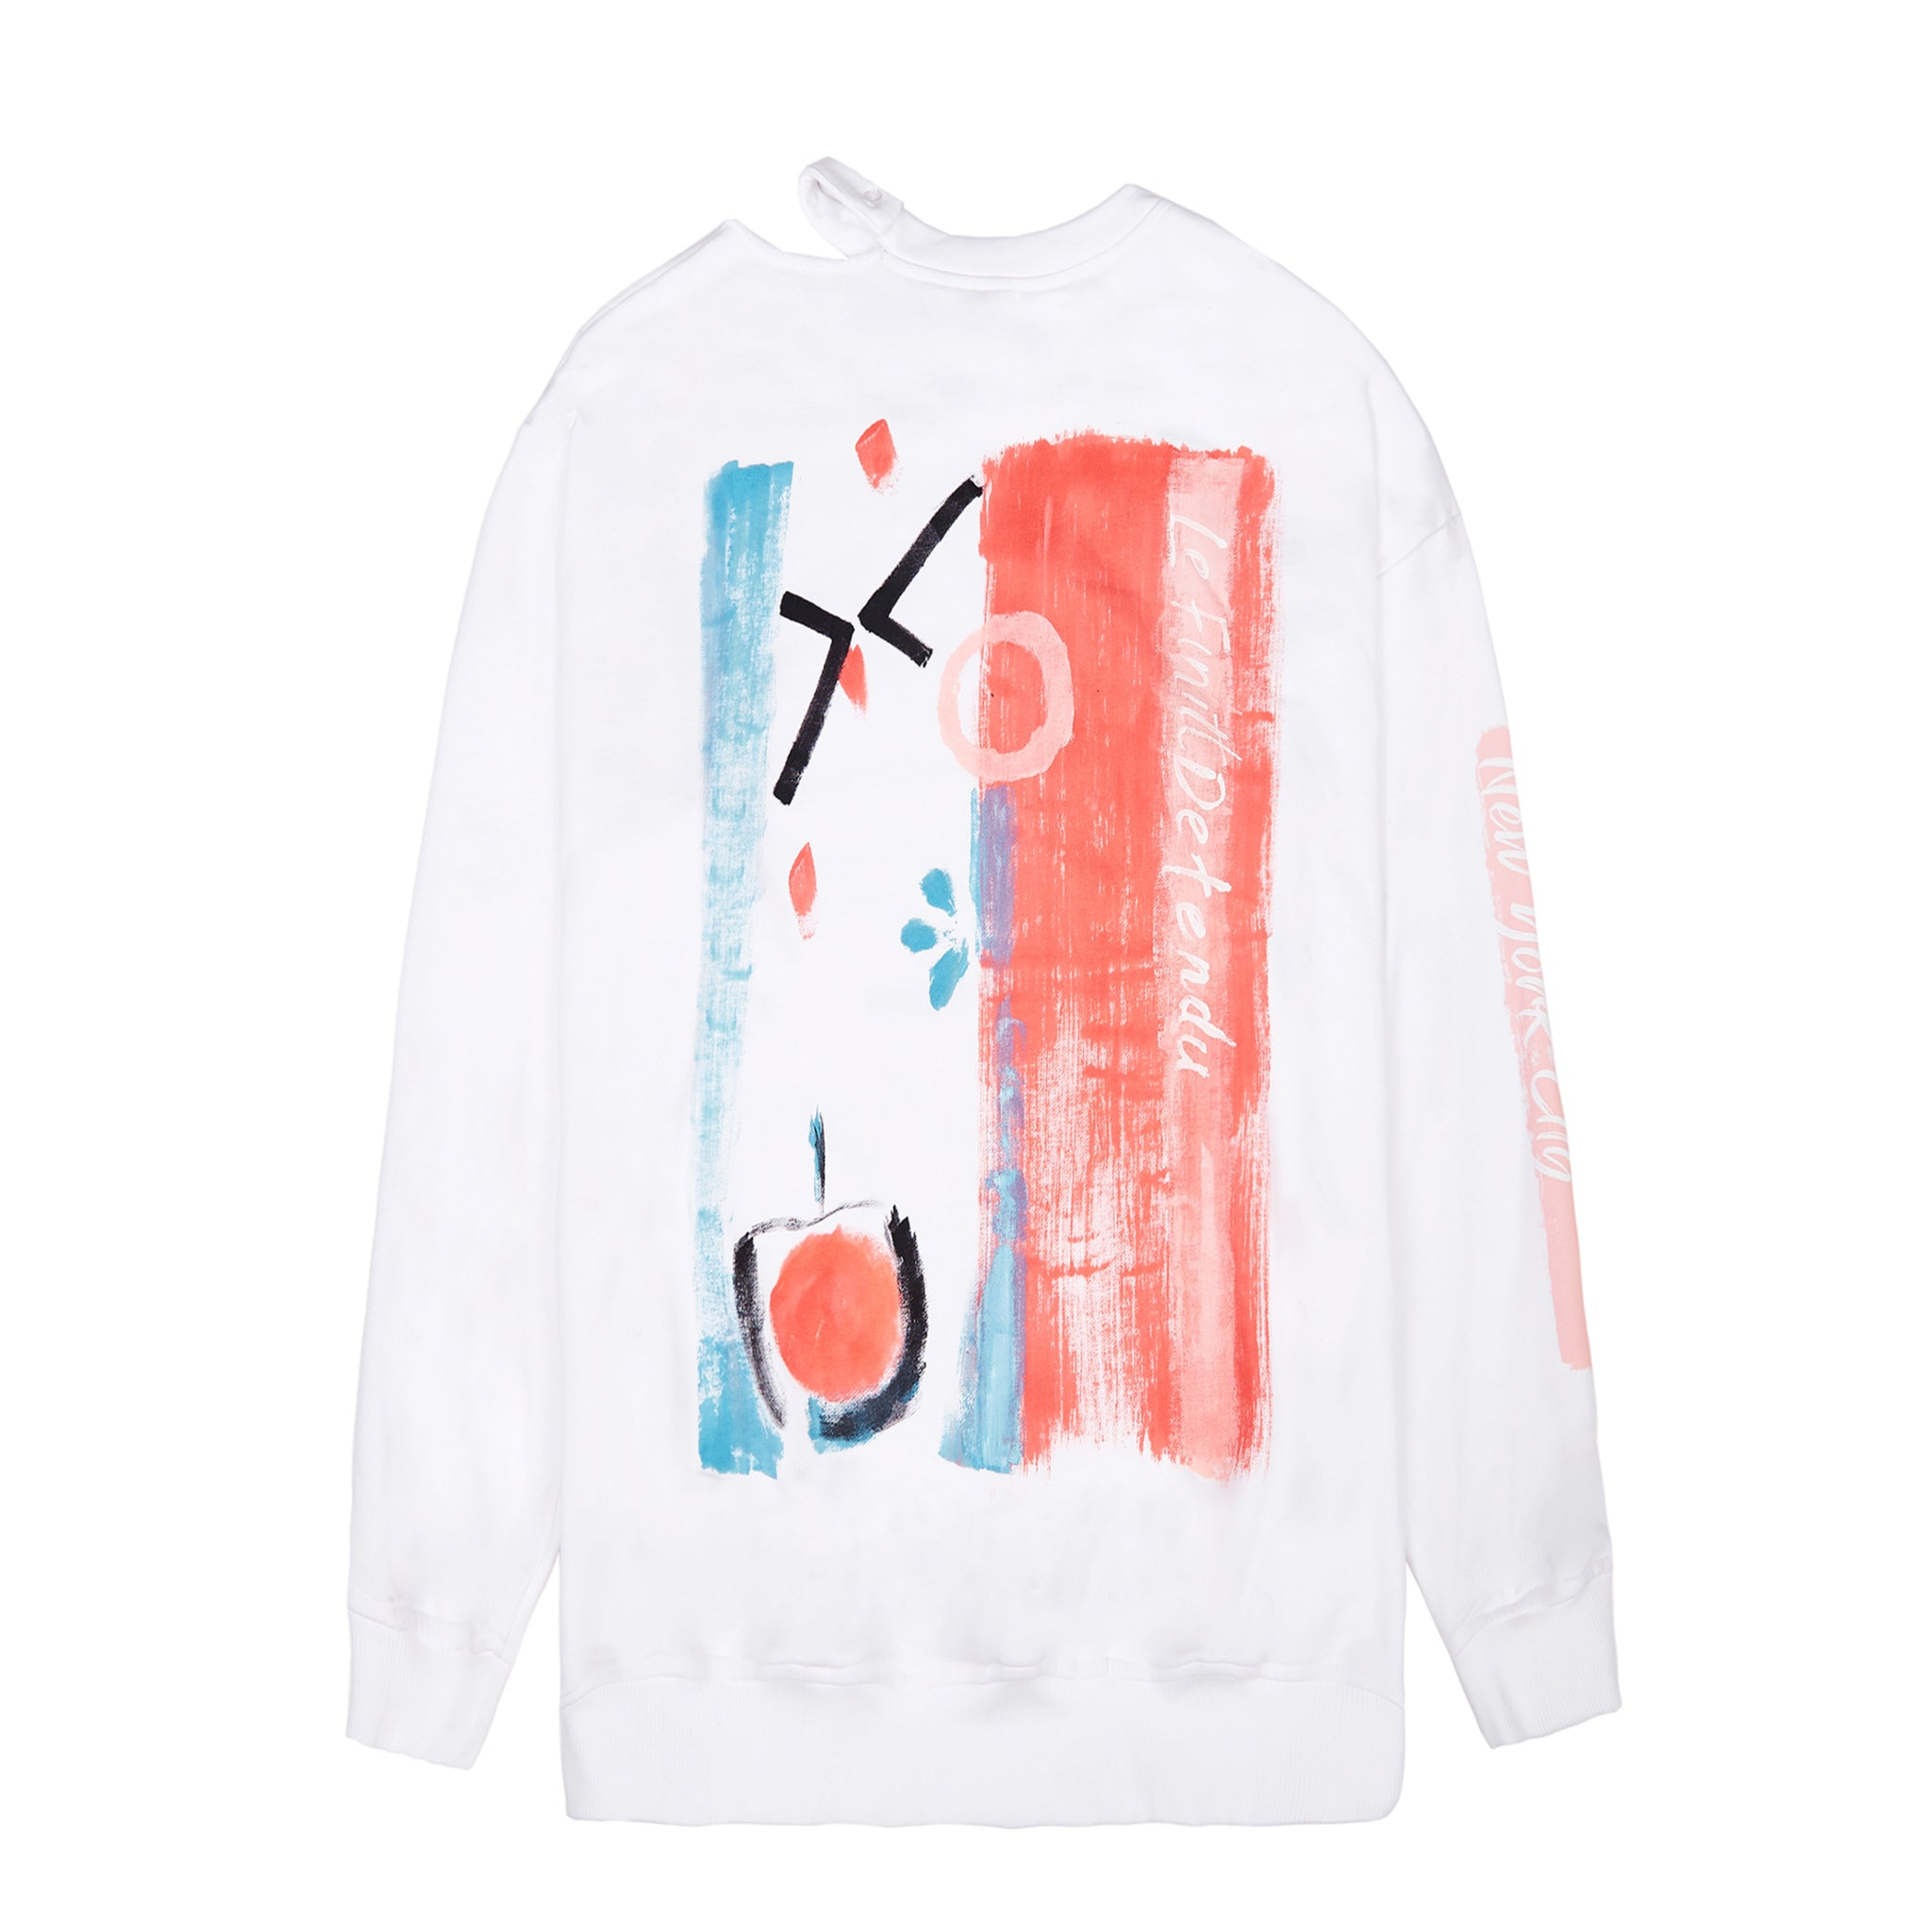 Load image into Gallery viewer, Le Fruit Defendu Betrayal Sweatshirt White